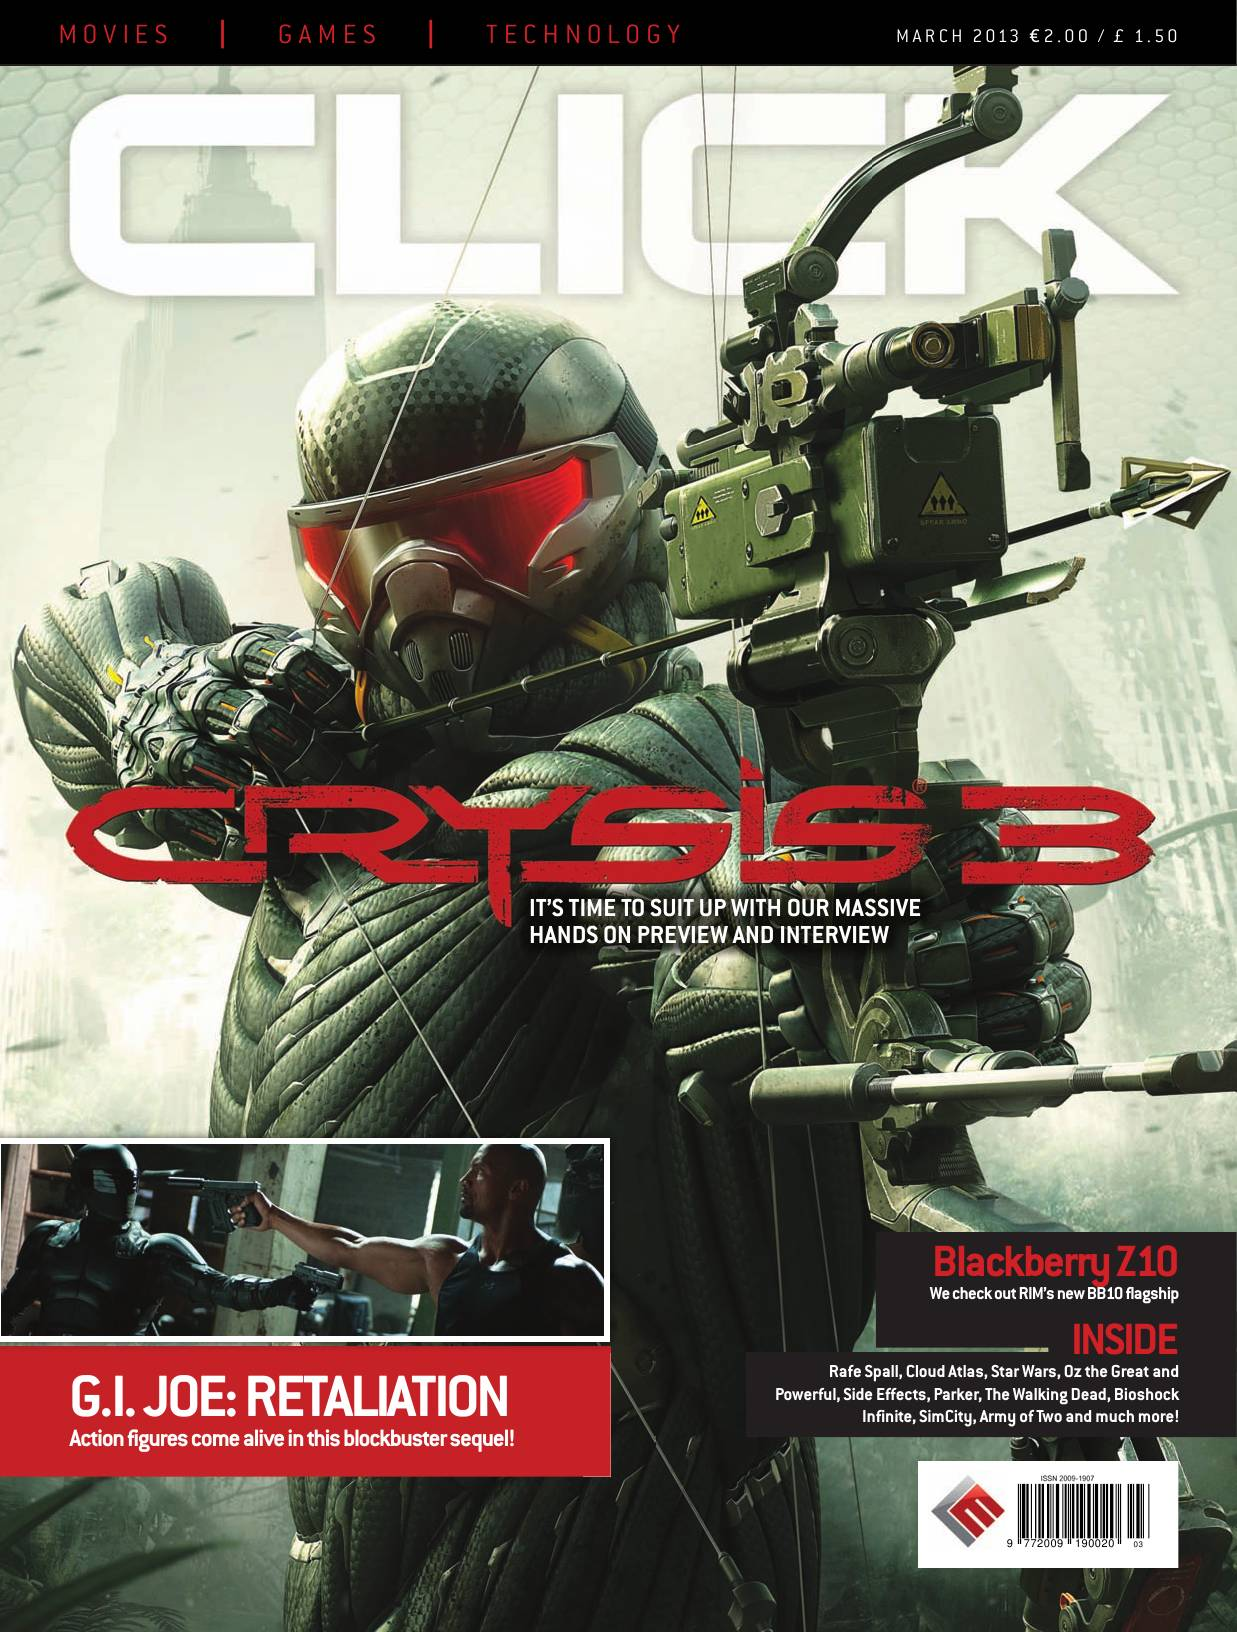 Click Issue 41